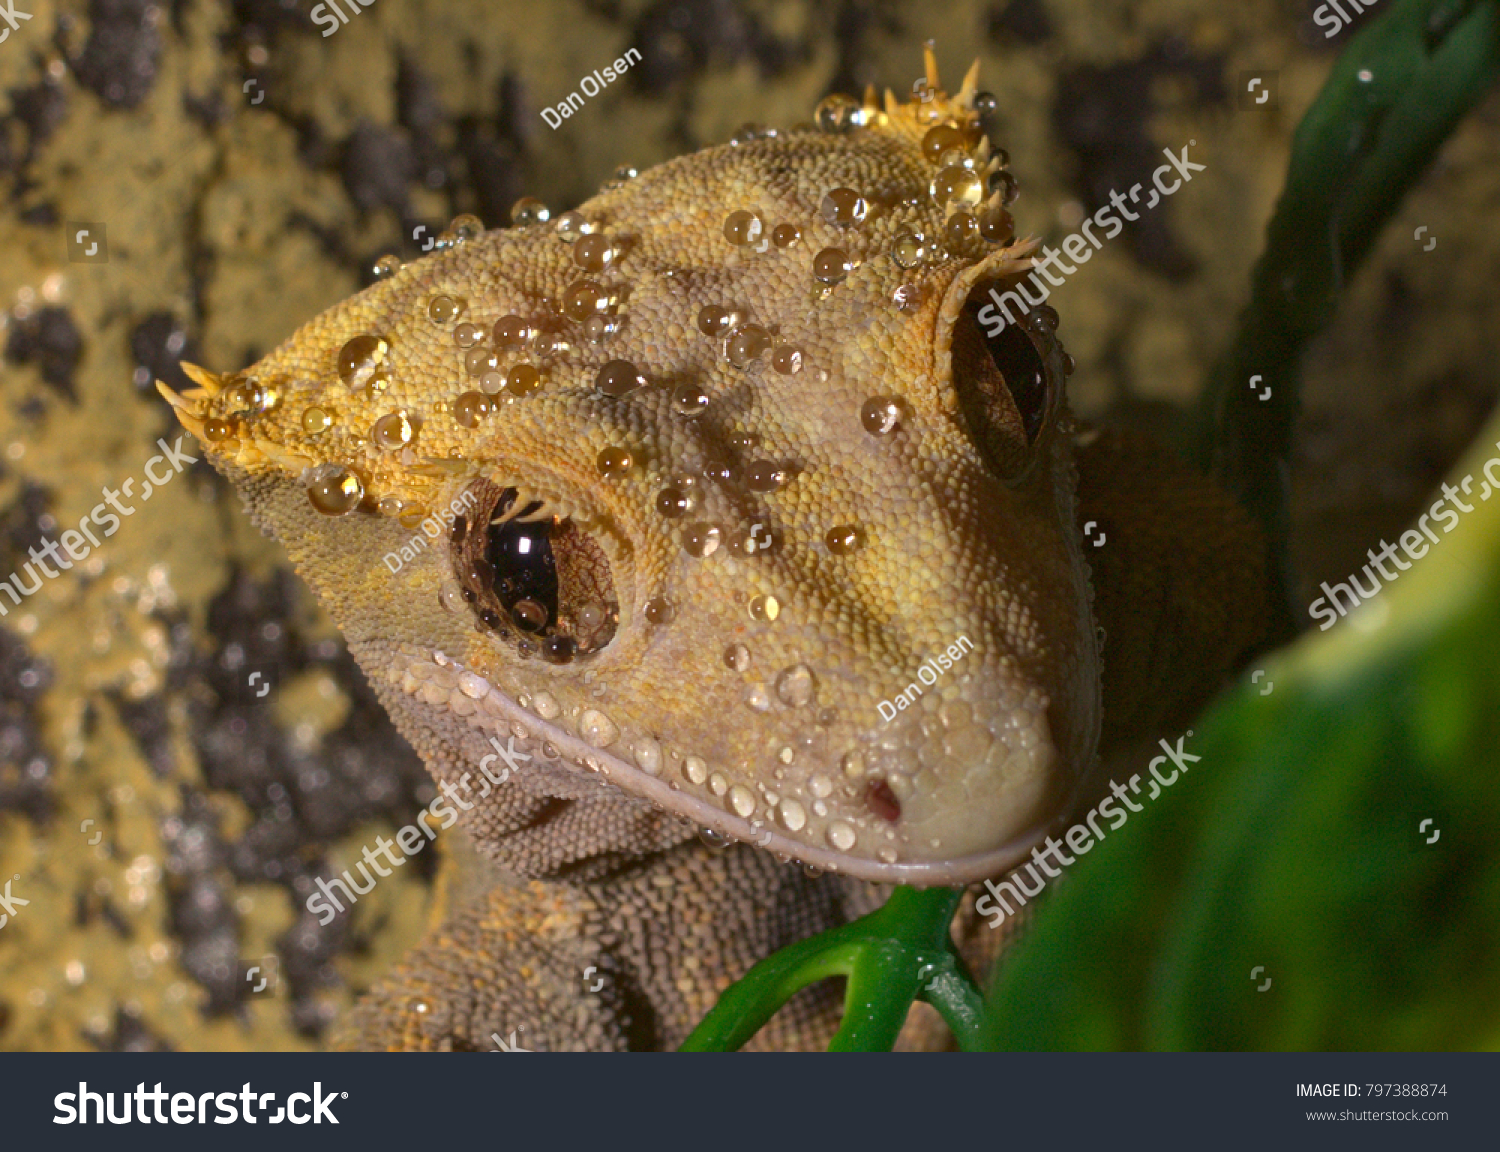 Cute Crested Gecko Also Called Eyelash Gecko Correlophus Ciliatus